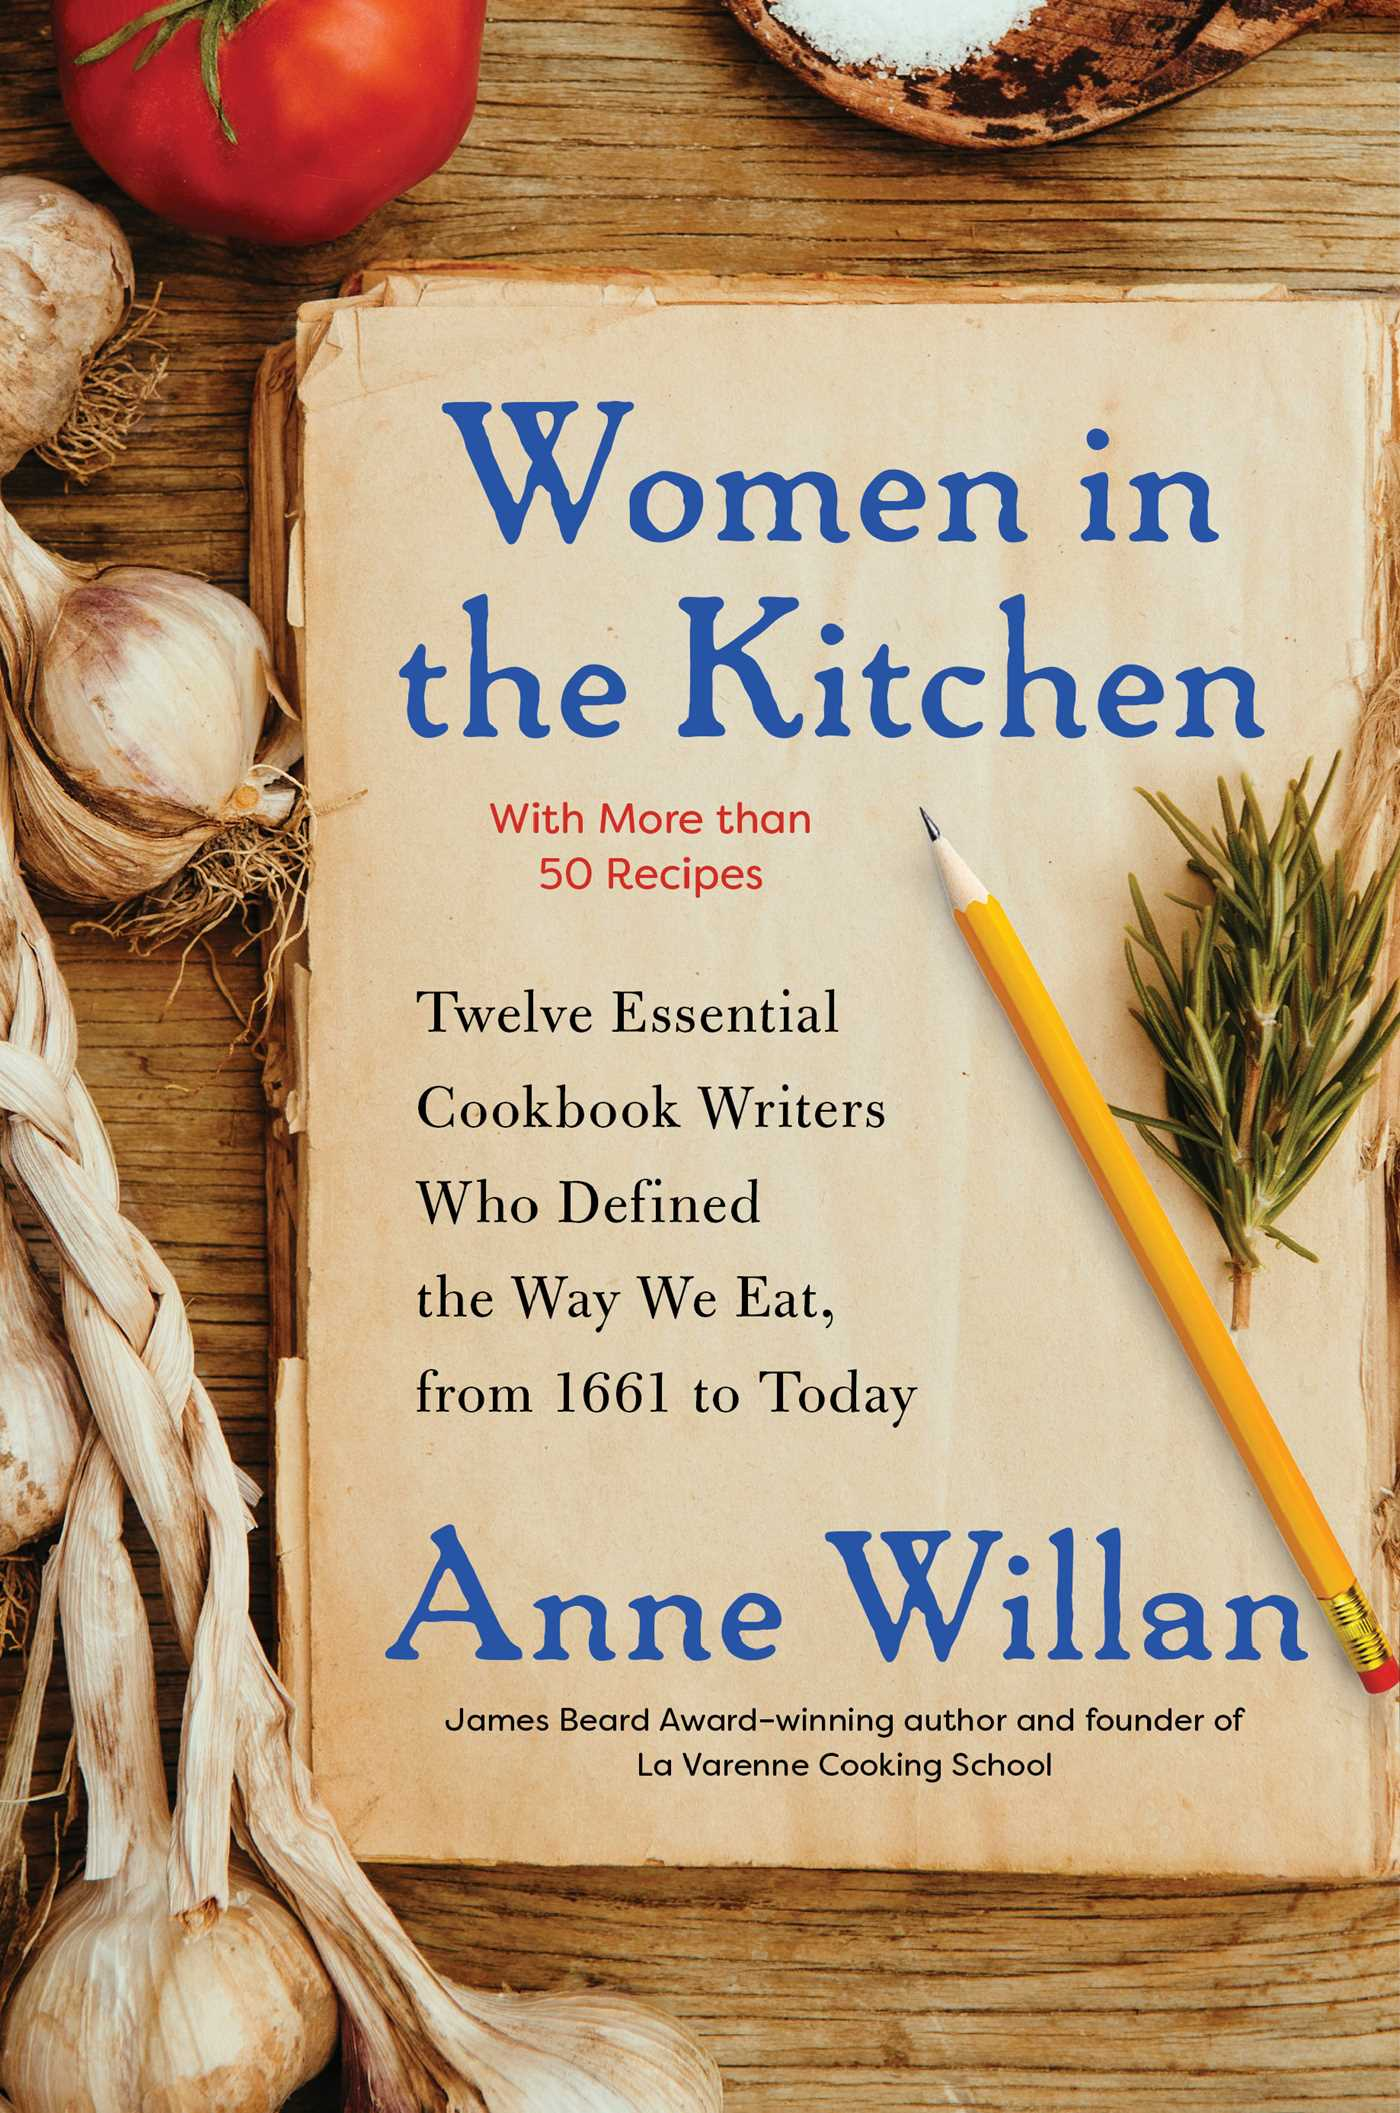 Women in the Kitchen: Twelve Essential Cookbook Writers Who Defined the Way We Eat, from 1661 to Today